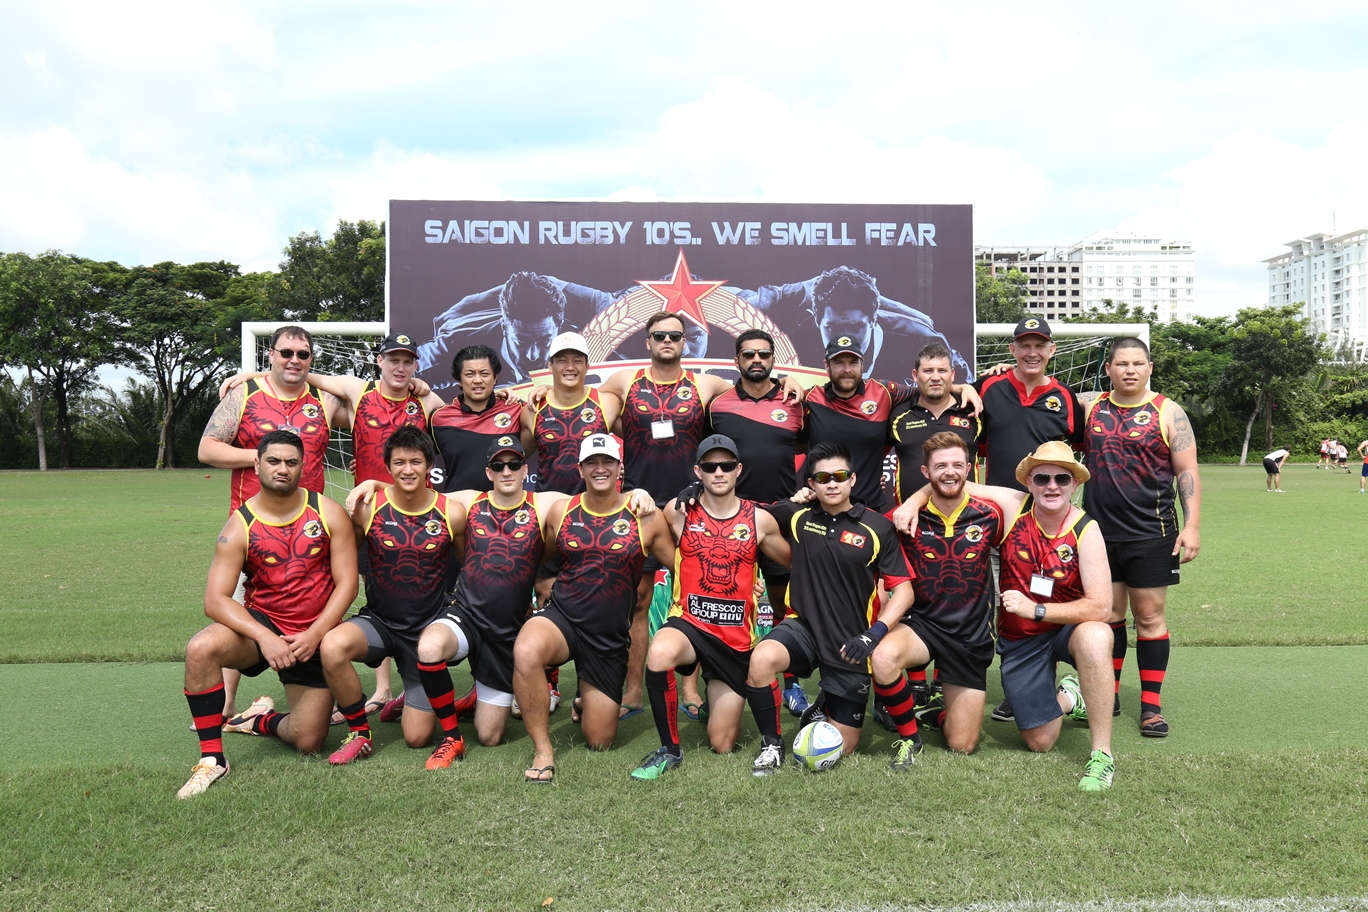 Save the date for International Rugby Tournament in Saigon: 17 Sept 2016